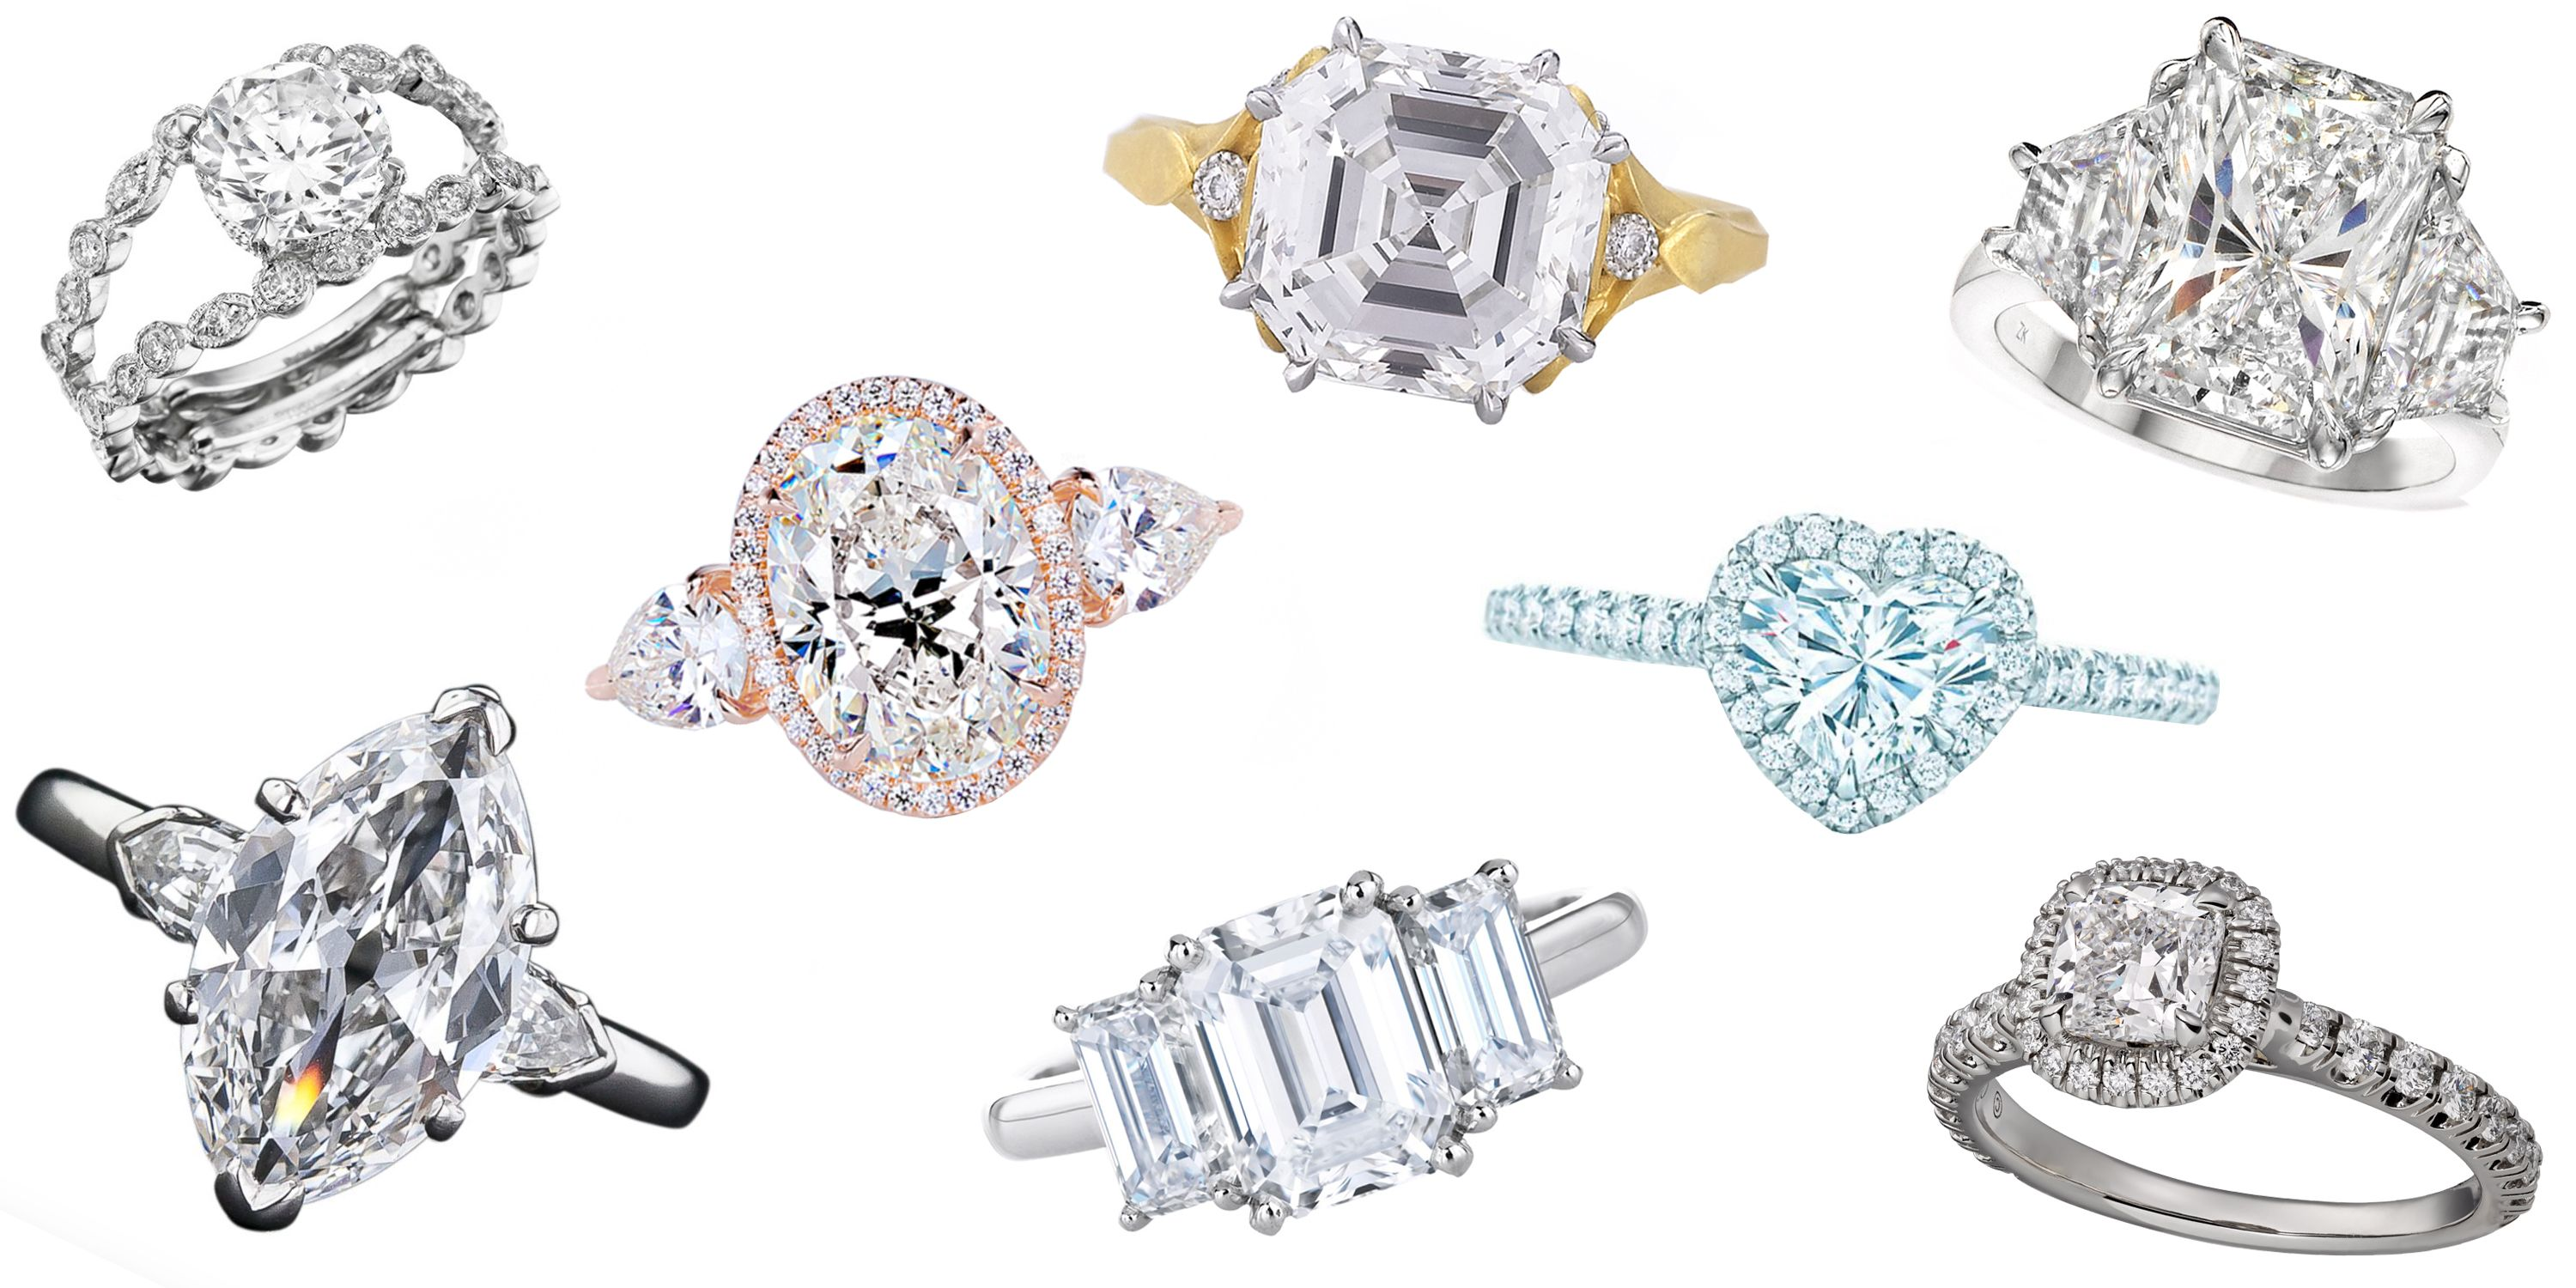 with bvlgari rings ring glamorous a venezia platinum incredible dedicata matvuk wedding engagement com diamond